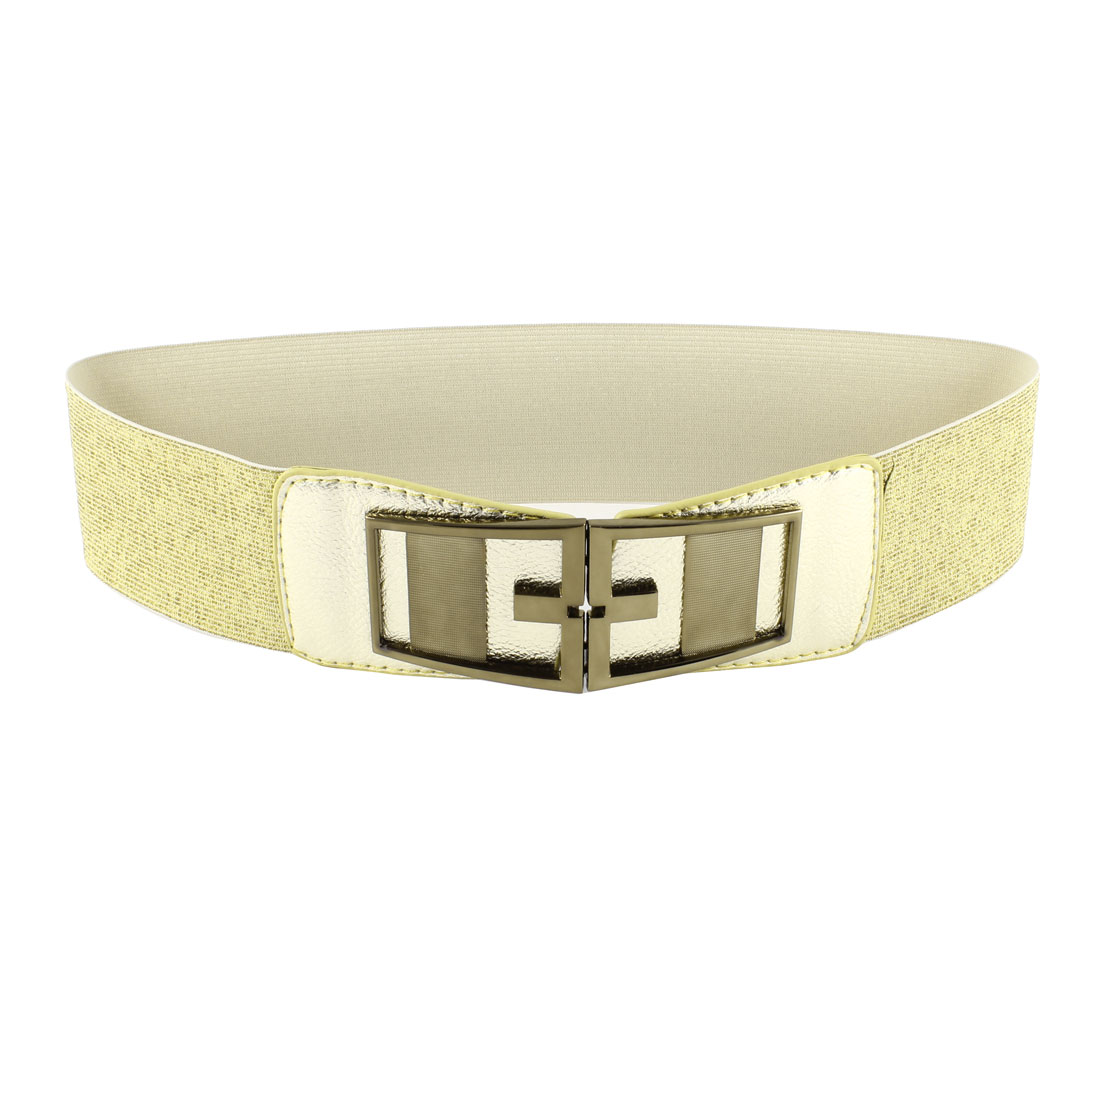 Symmetrical Interloack Bucle Textured Elastic Belt Gold Tone for Ladies